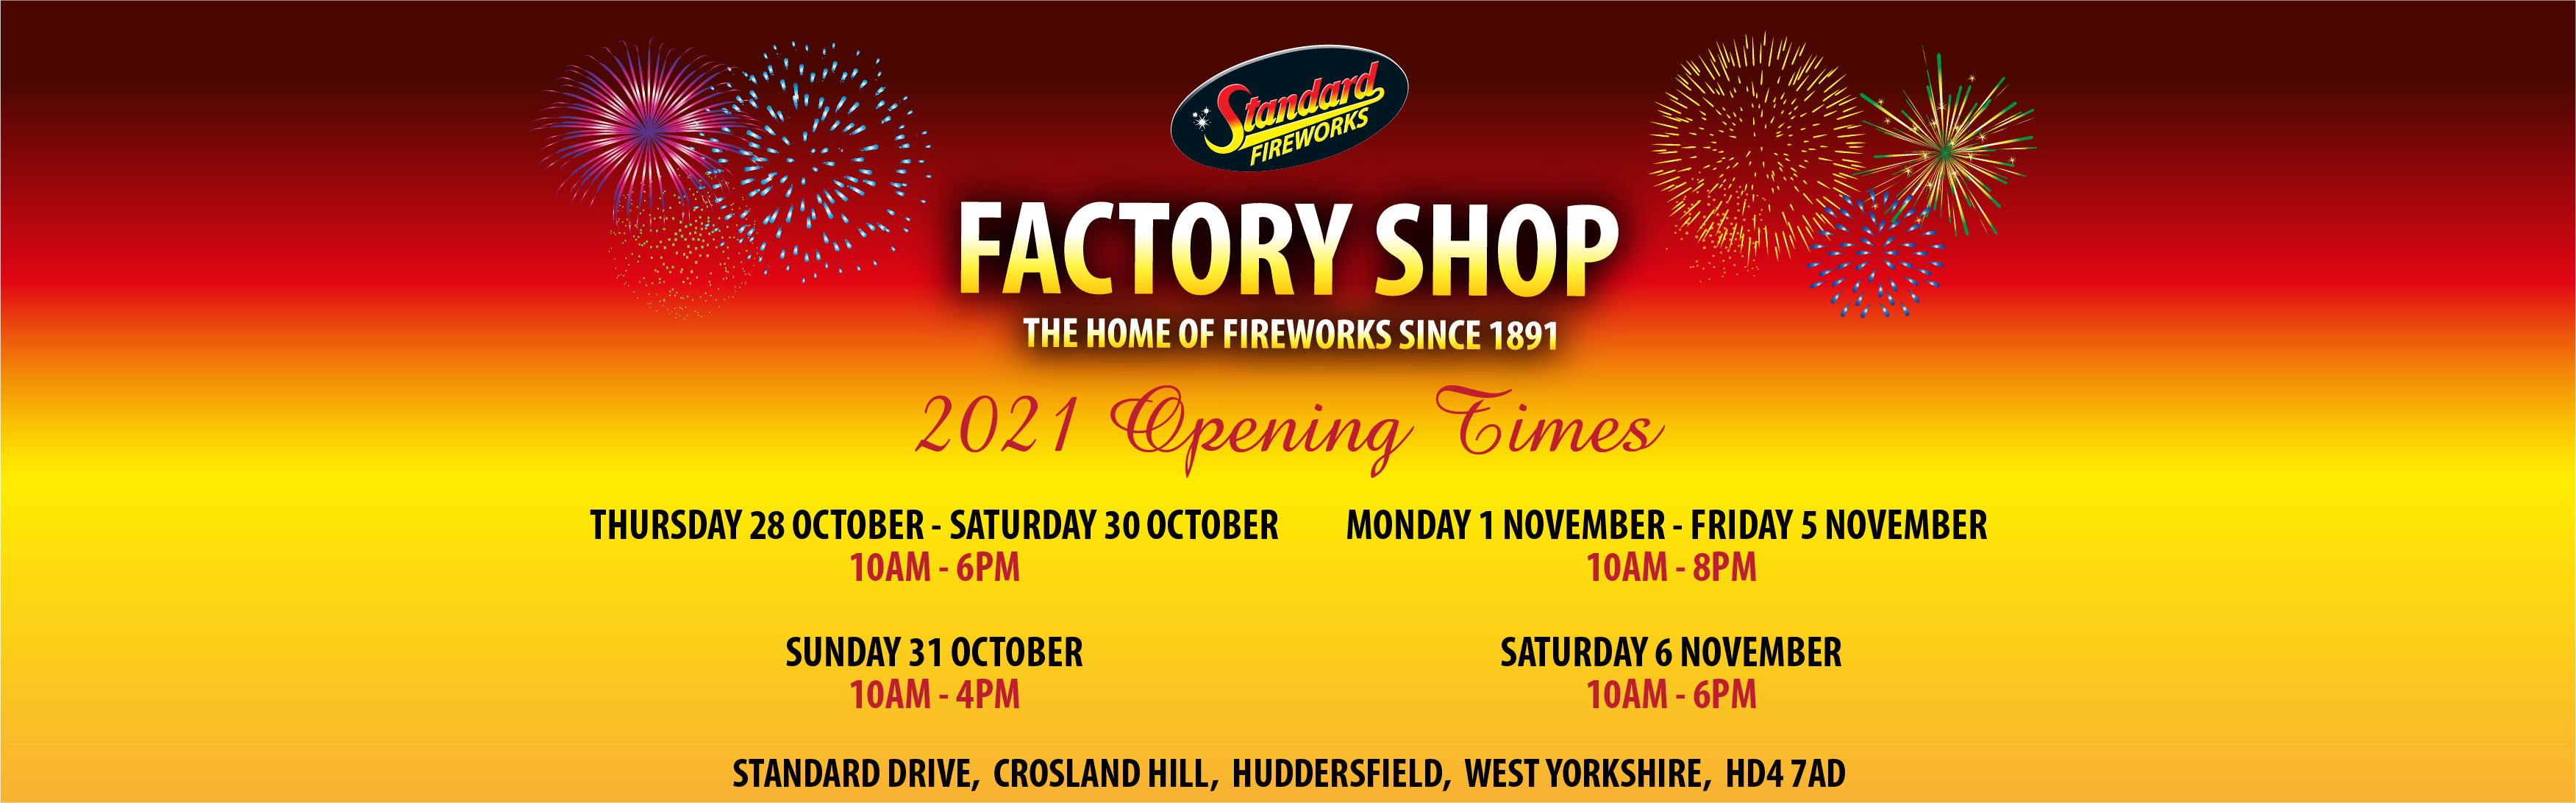 Factory Shop Opening Times